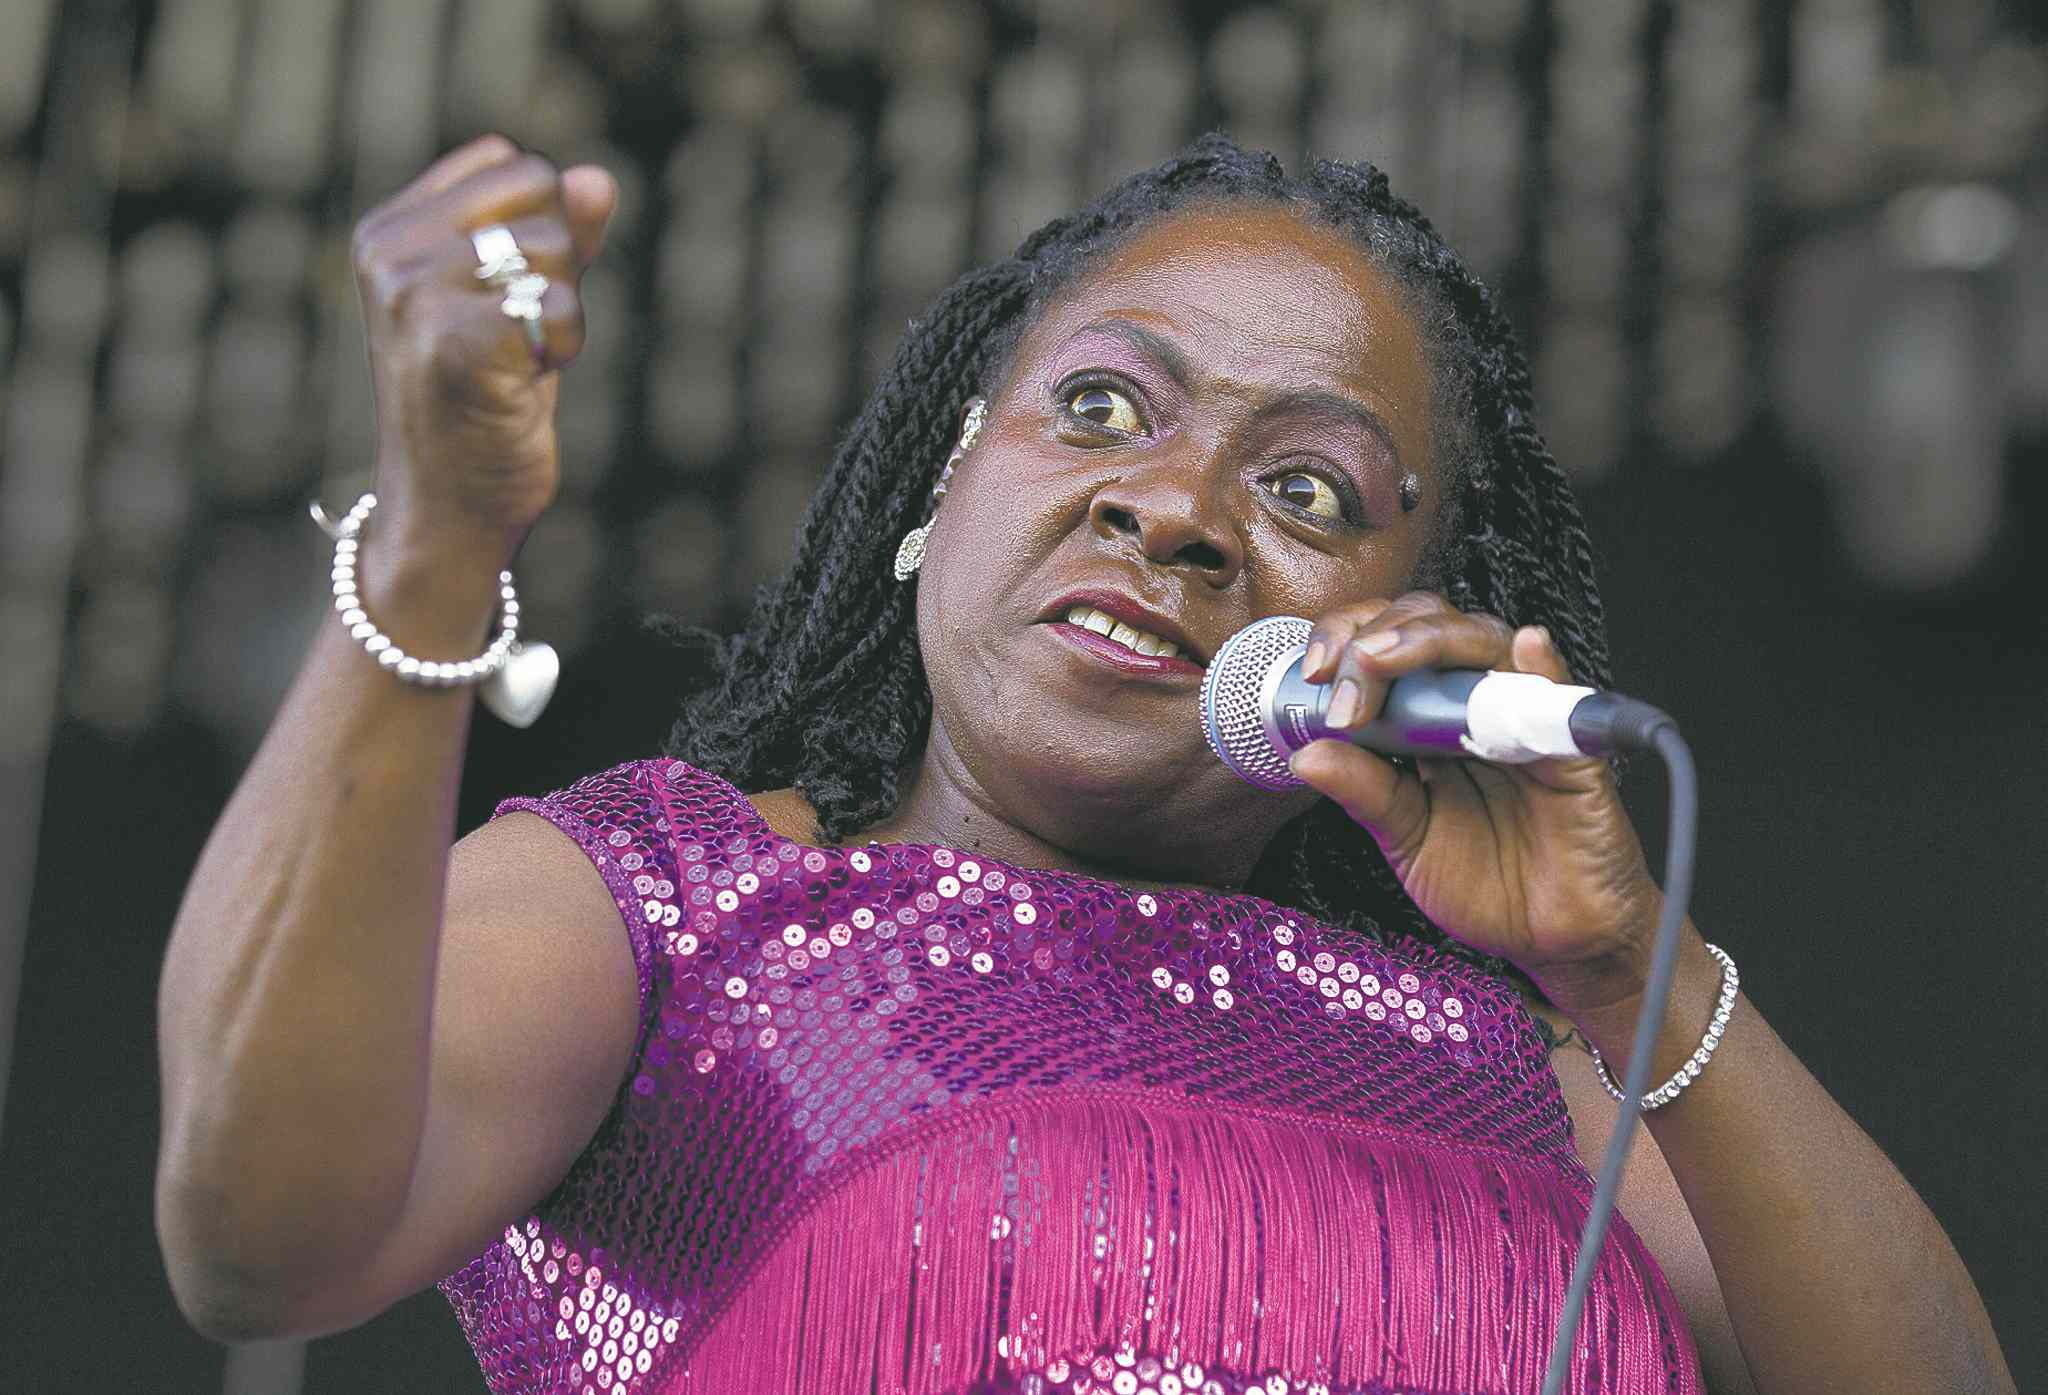 Sharon Jones was back giving the people what they want only months after finishing her final course of chemotherapy.